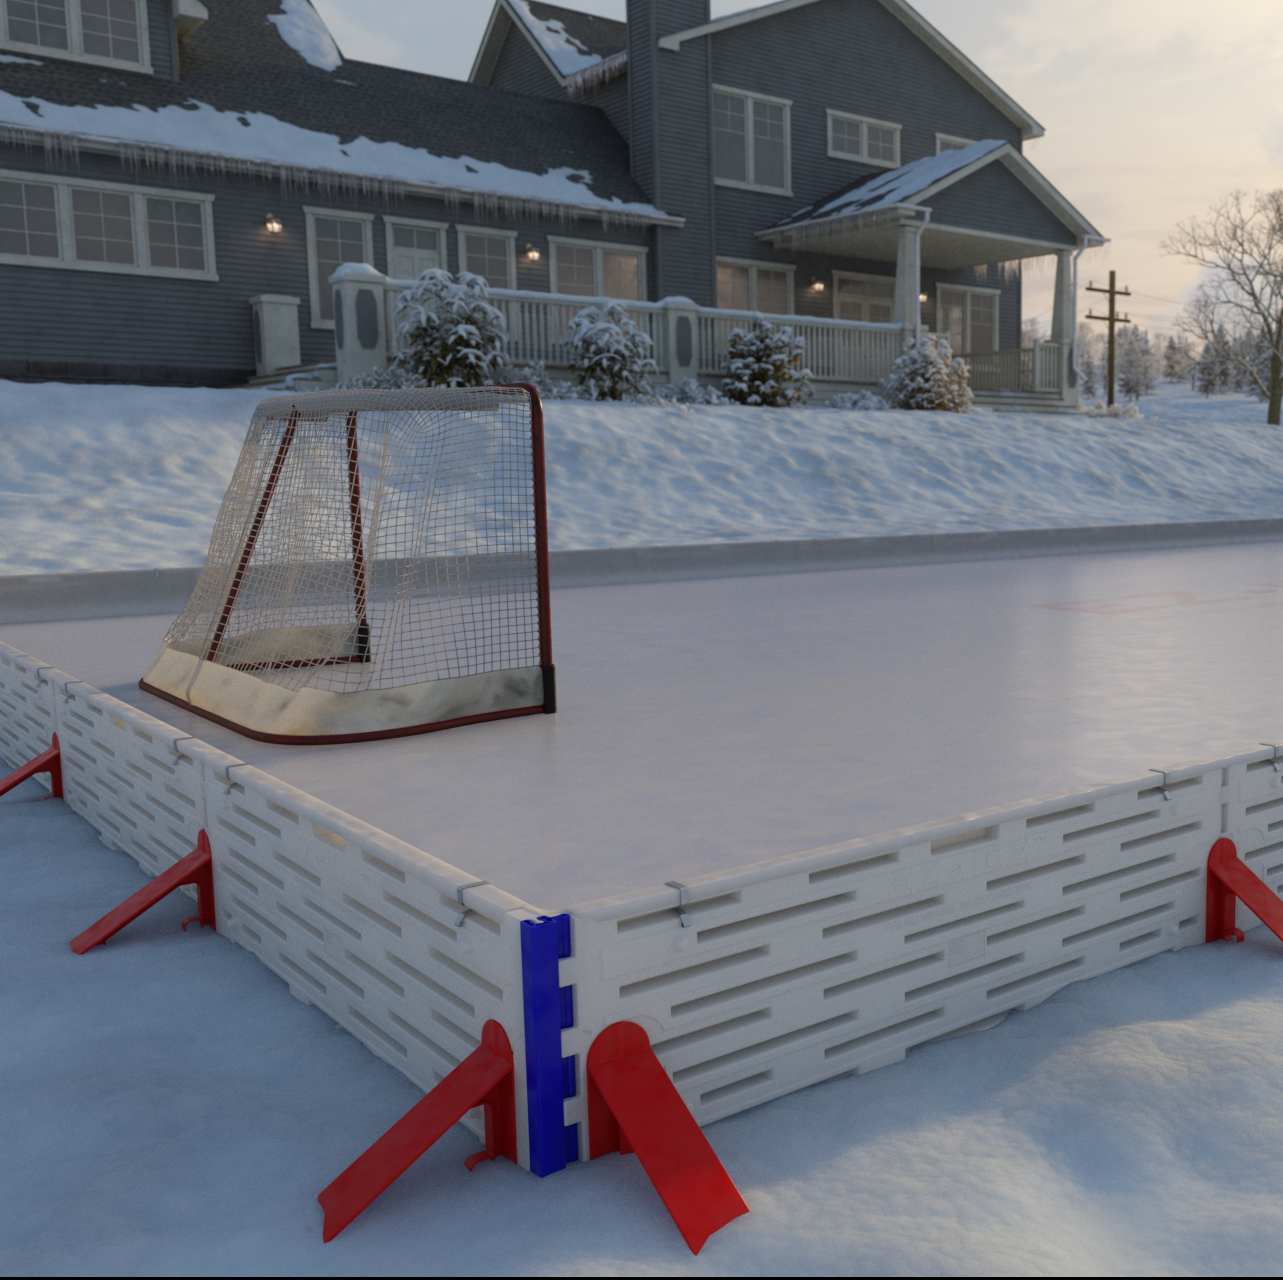 Build Your Own Ice Rink In Your Backyard In Just 1 Hour ...